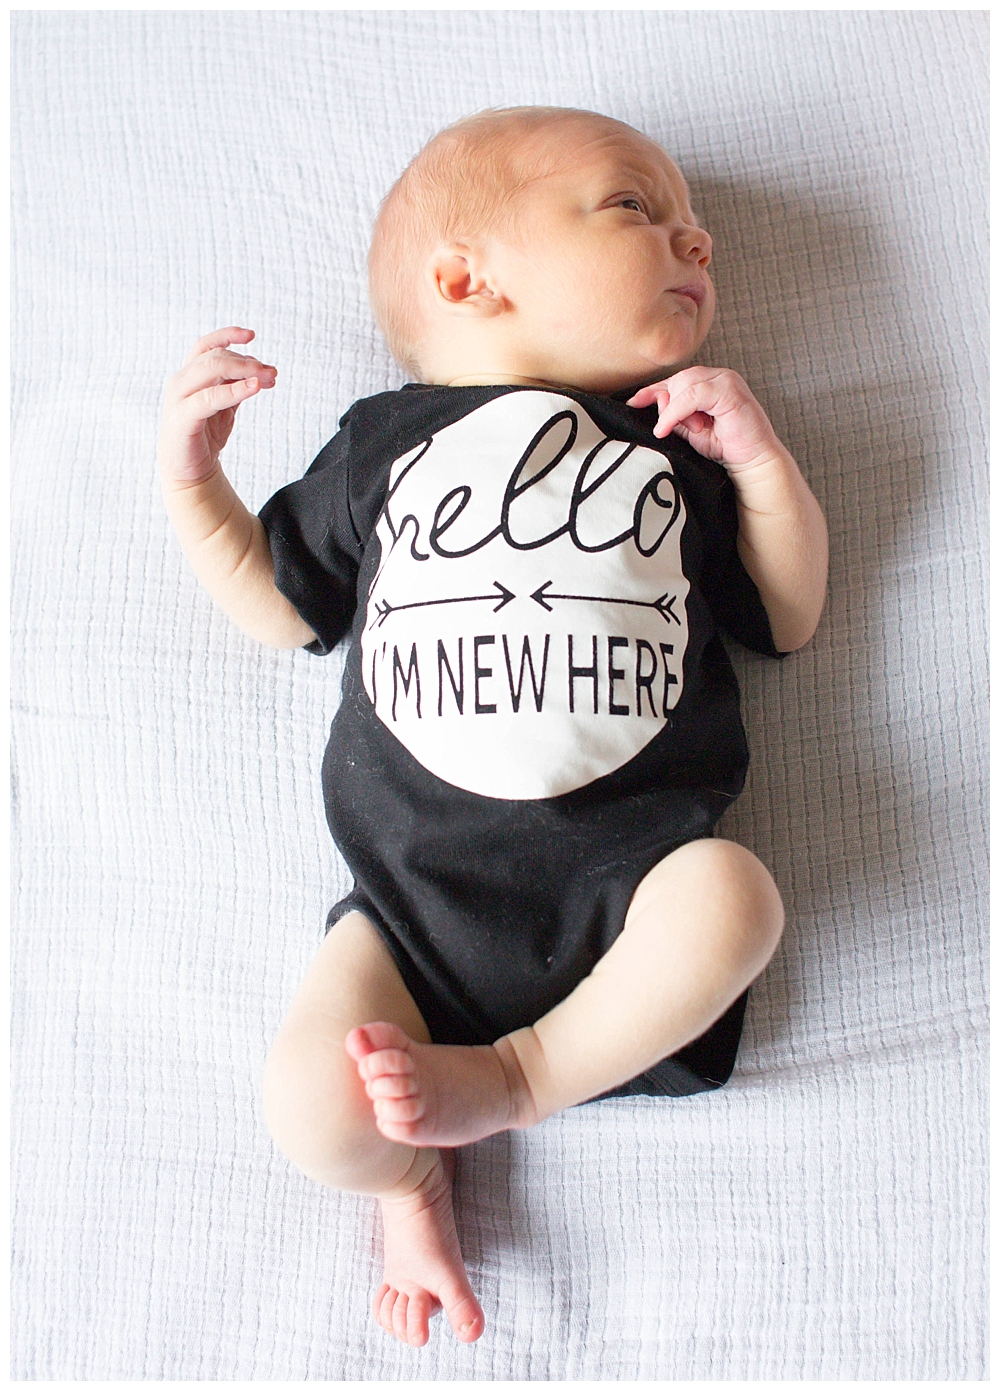 Lifestyle newborn photos by Bellingham newborn photographer Renee Bergeron of Little Earthling Photography.